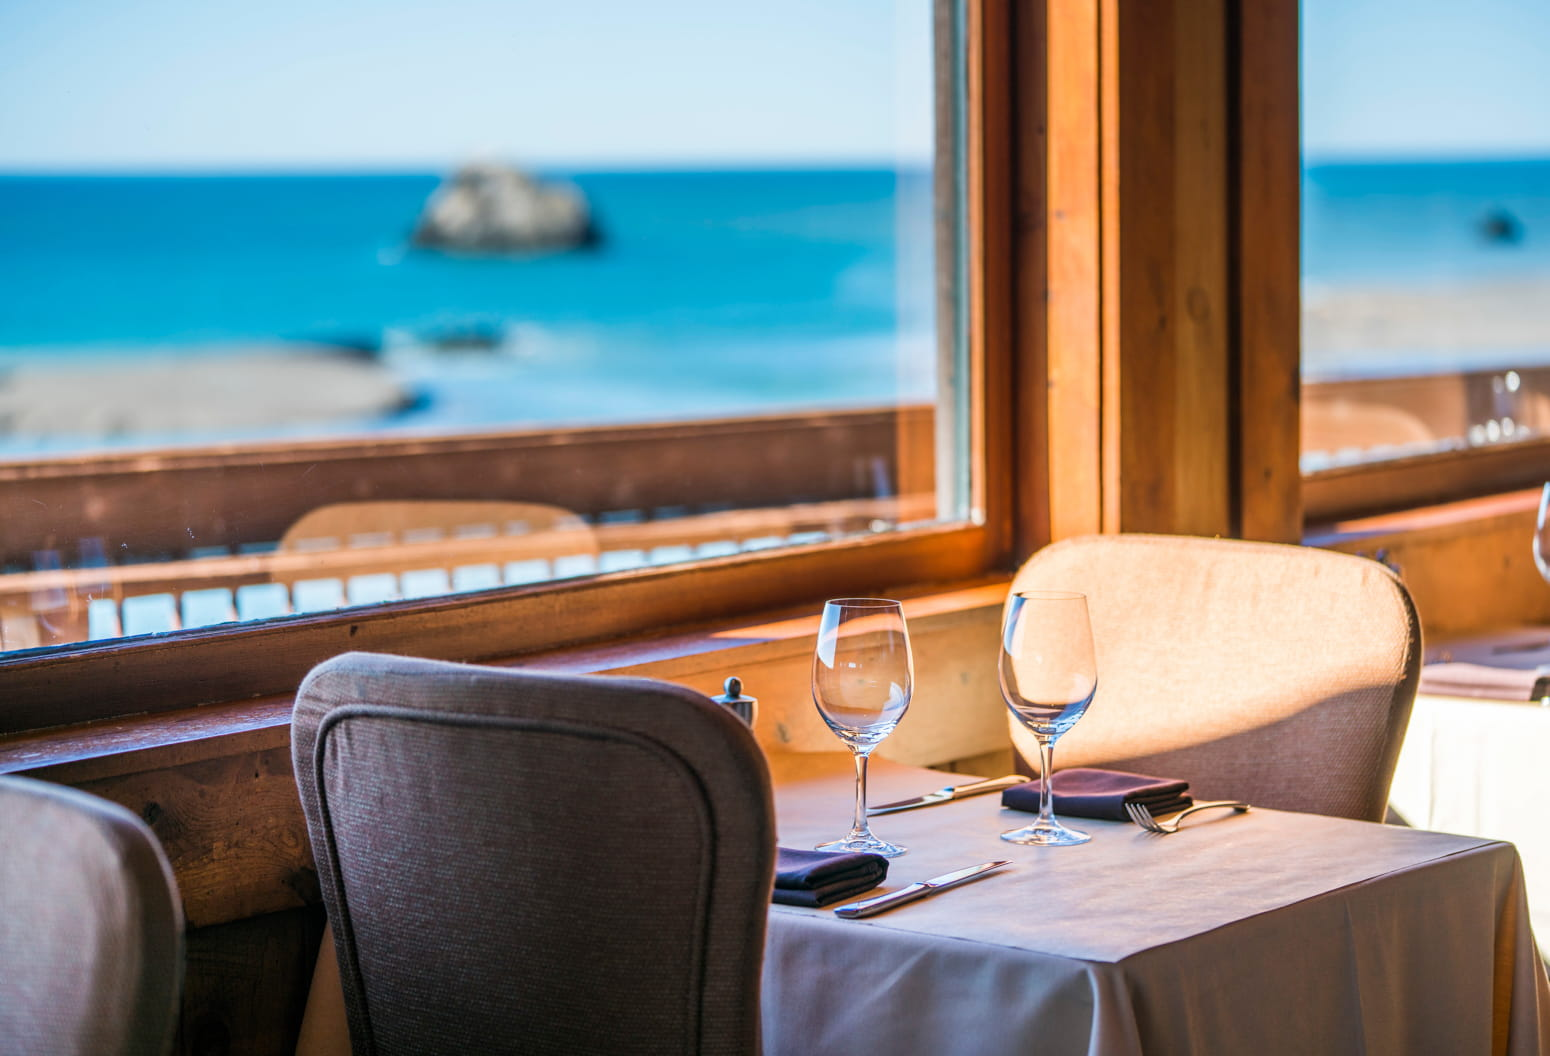 Intimate seating for two near a large window overlooking the Pacific Ocean